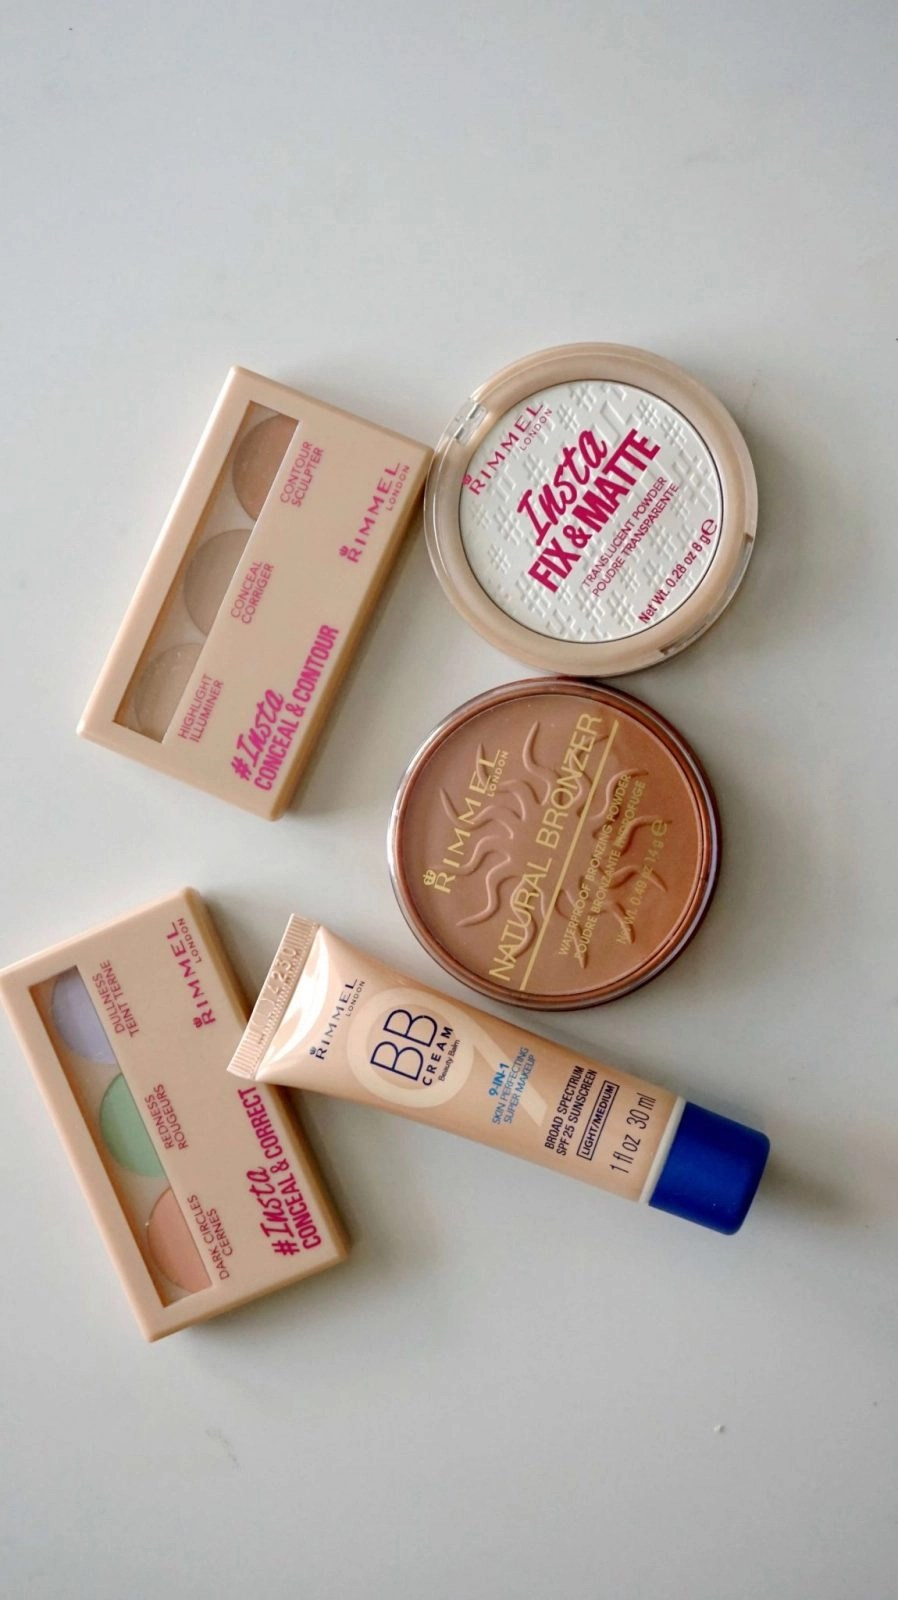 Rimmel Face Products Main Image